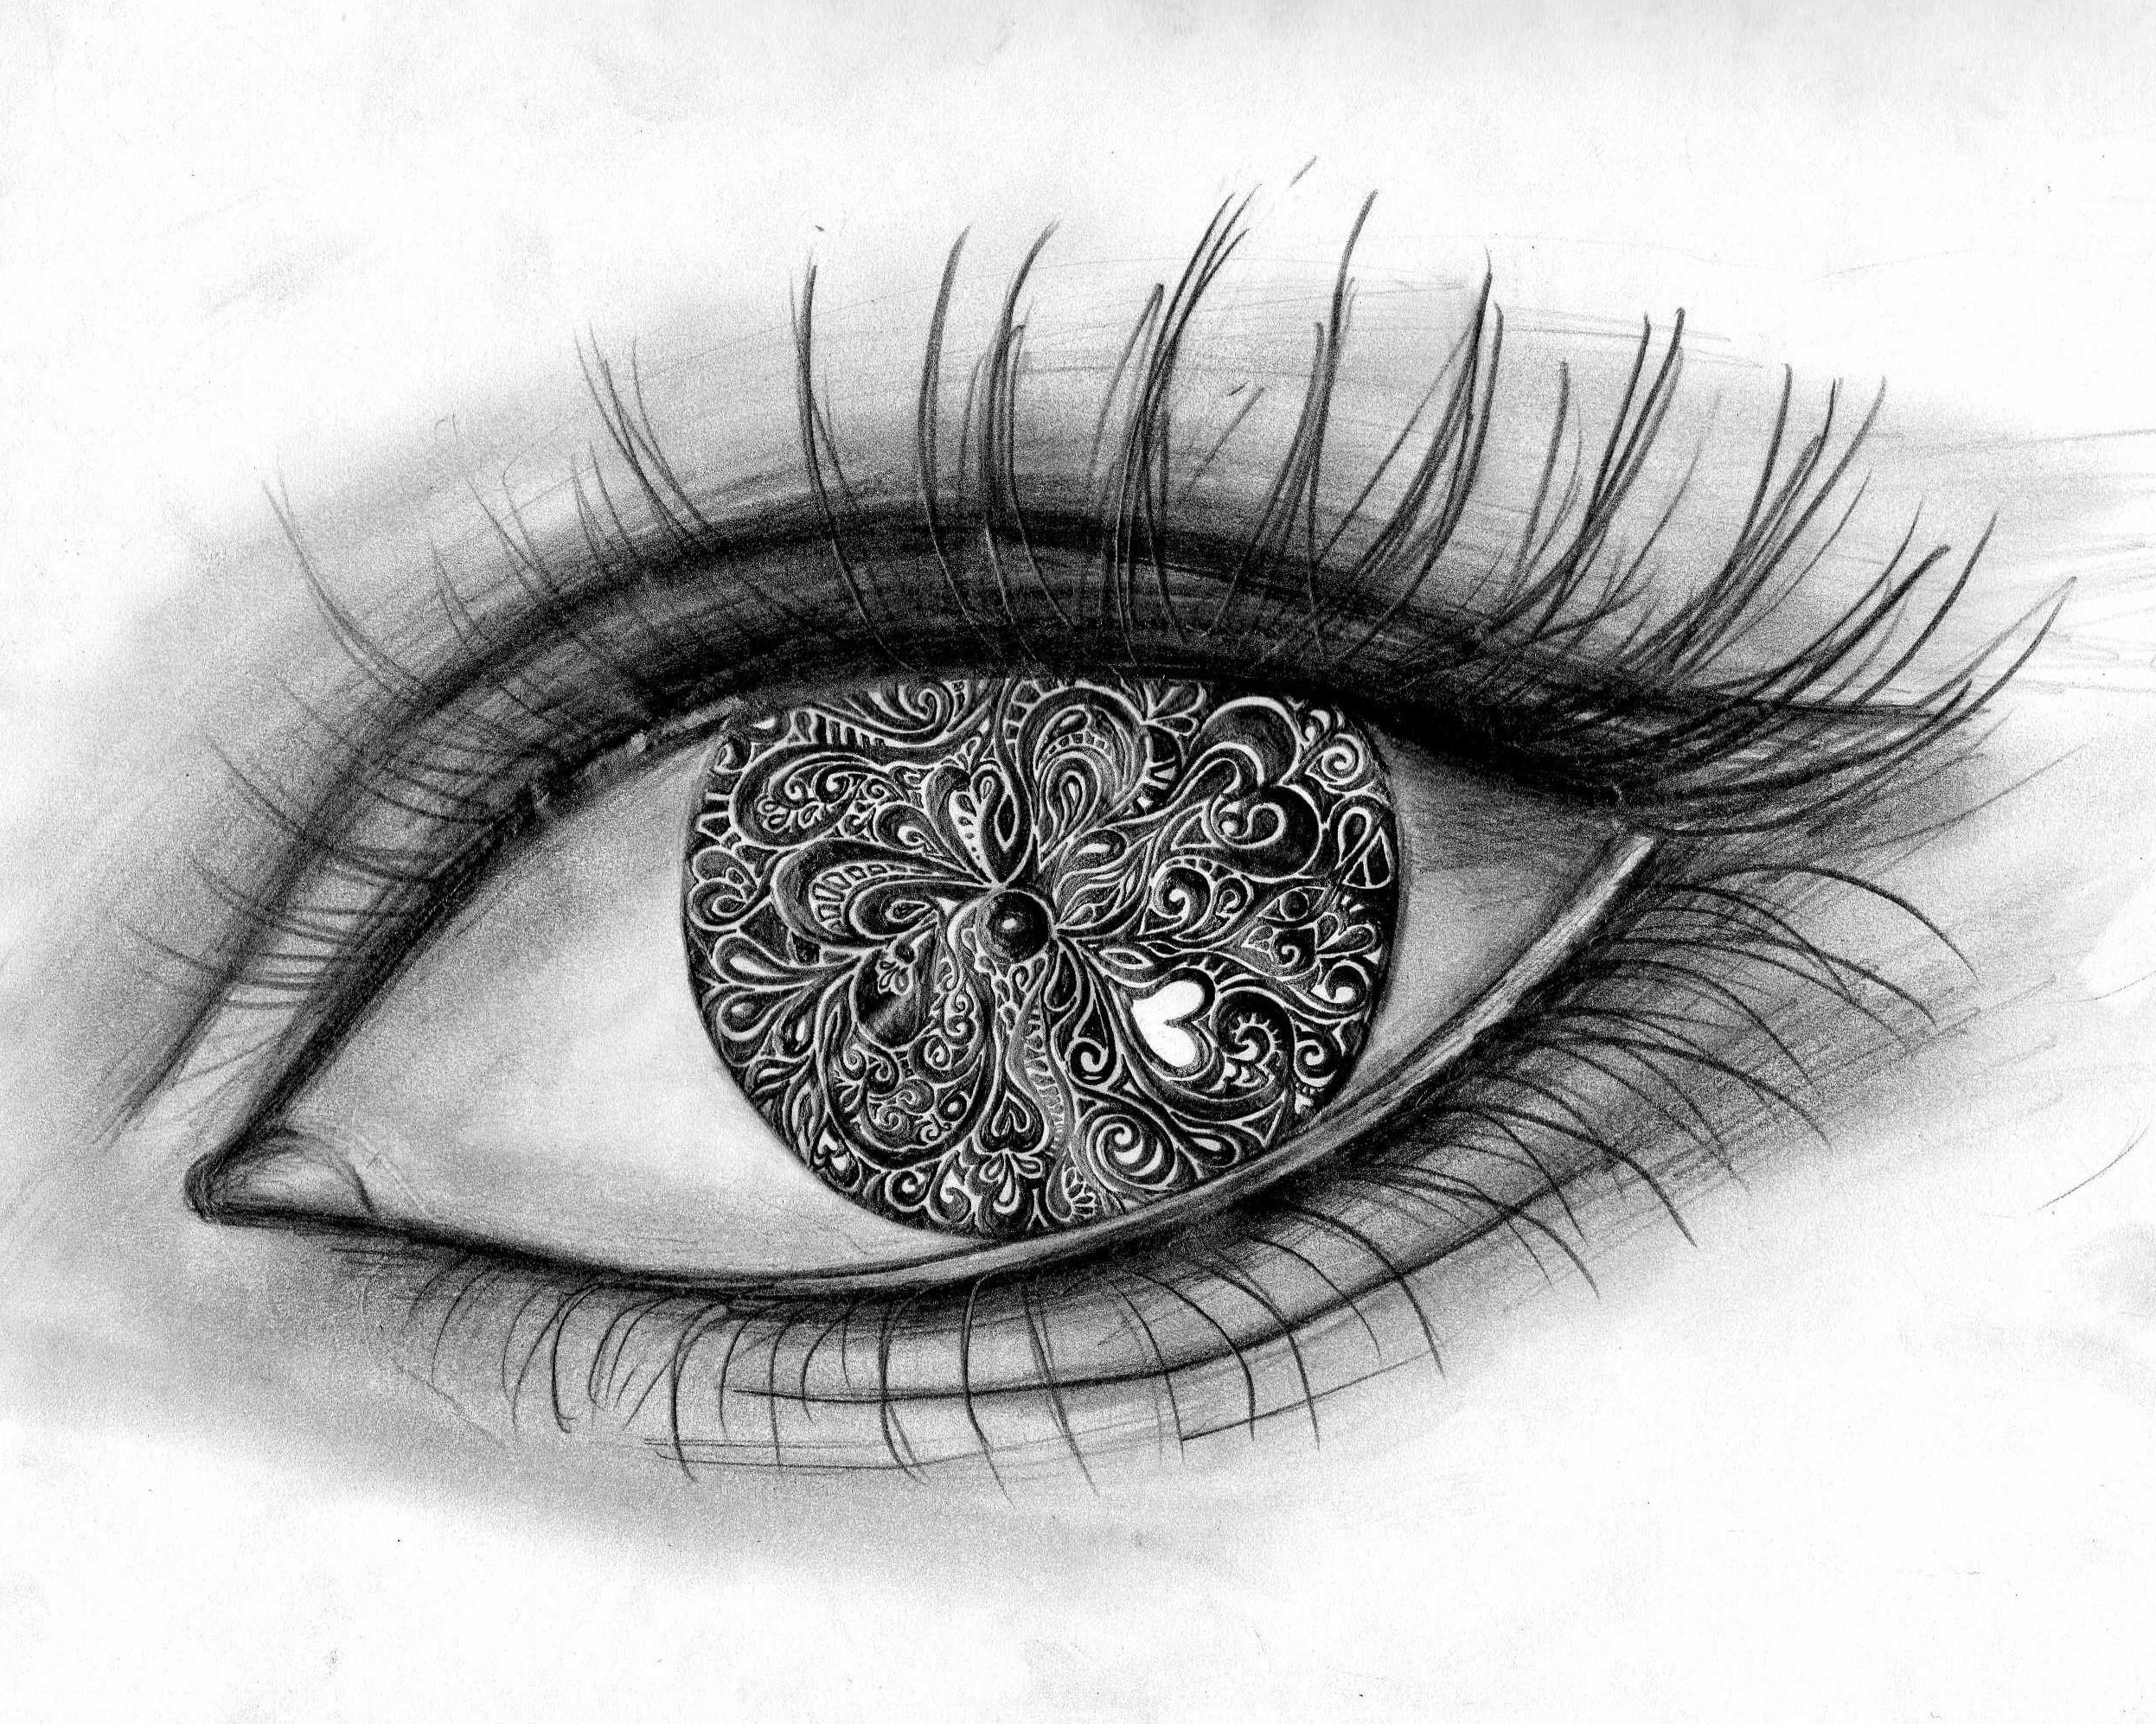 Cool Drawings Pics For Gt Cool Drawings Of Eyes Tumblr ...